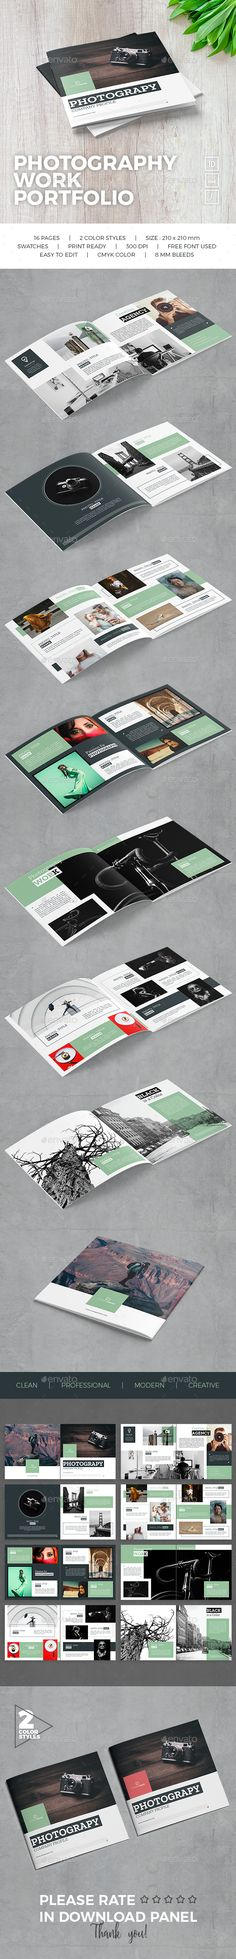 Photography Work Portfolio Brochure Template InDesign INDD